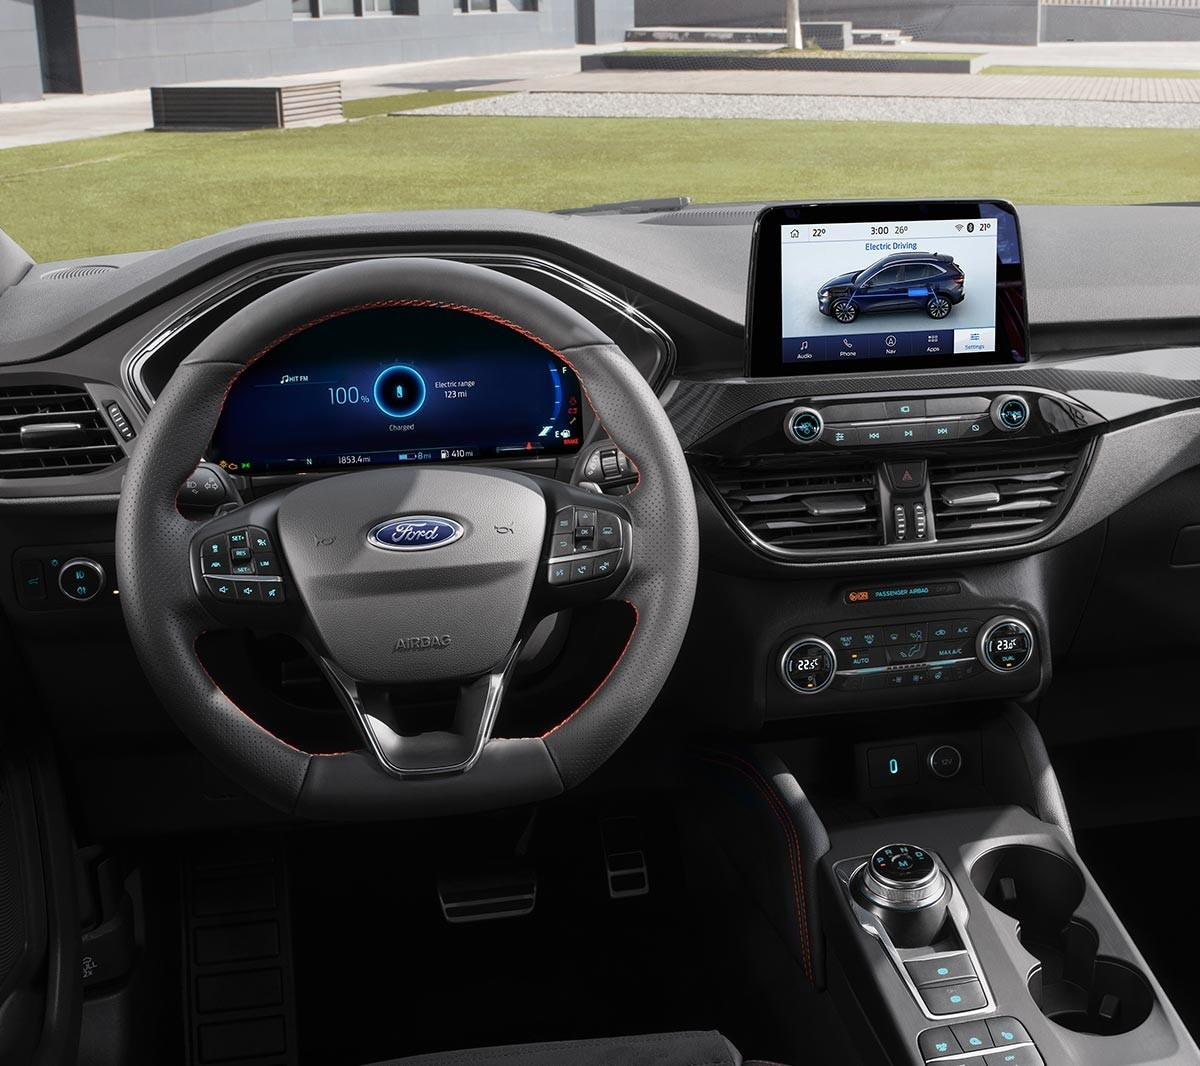 All New Ford Kuga interior with steering wheel and SYNC3